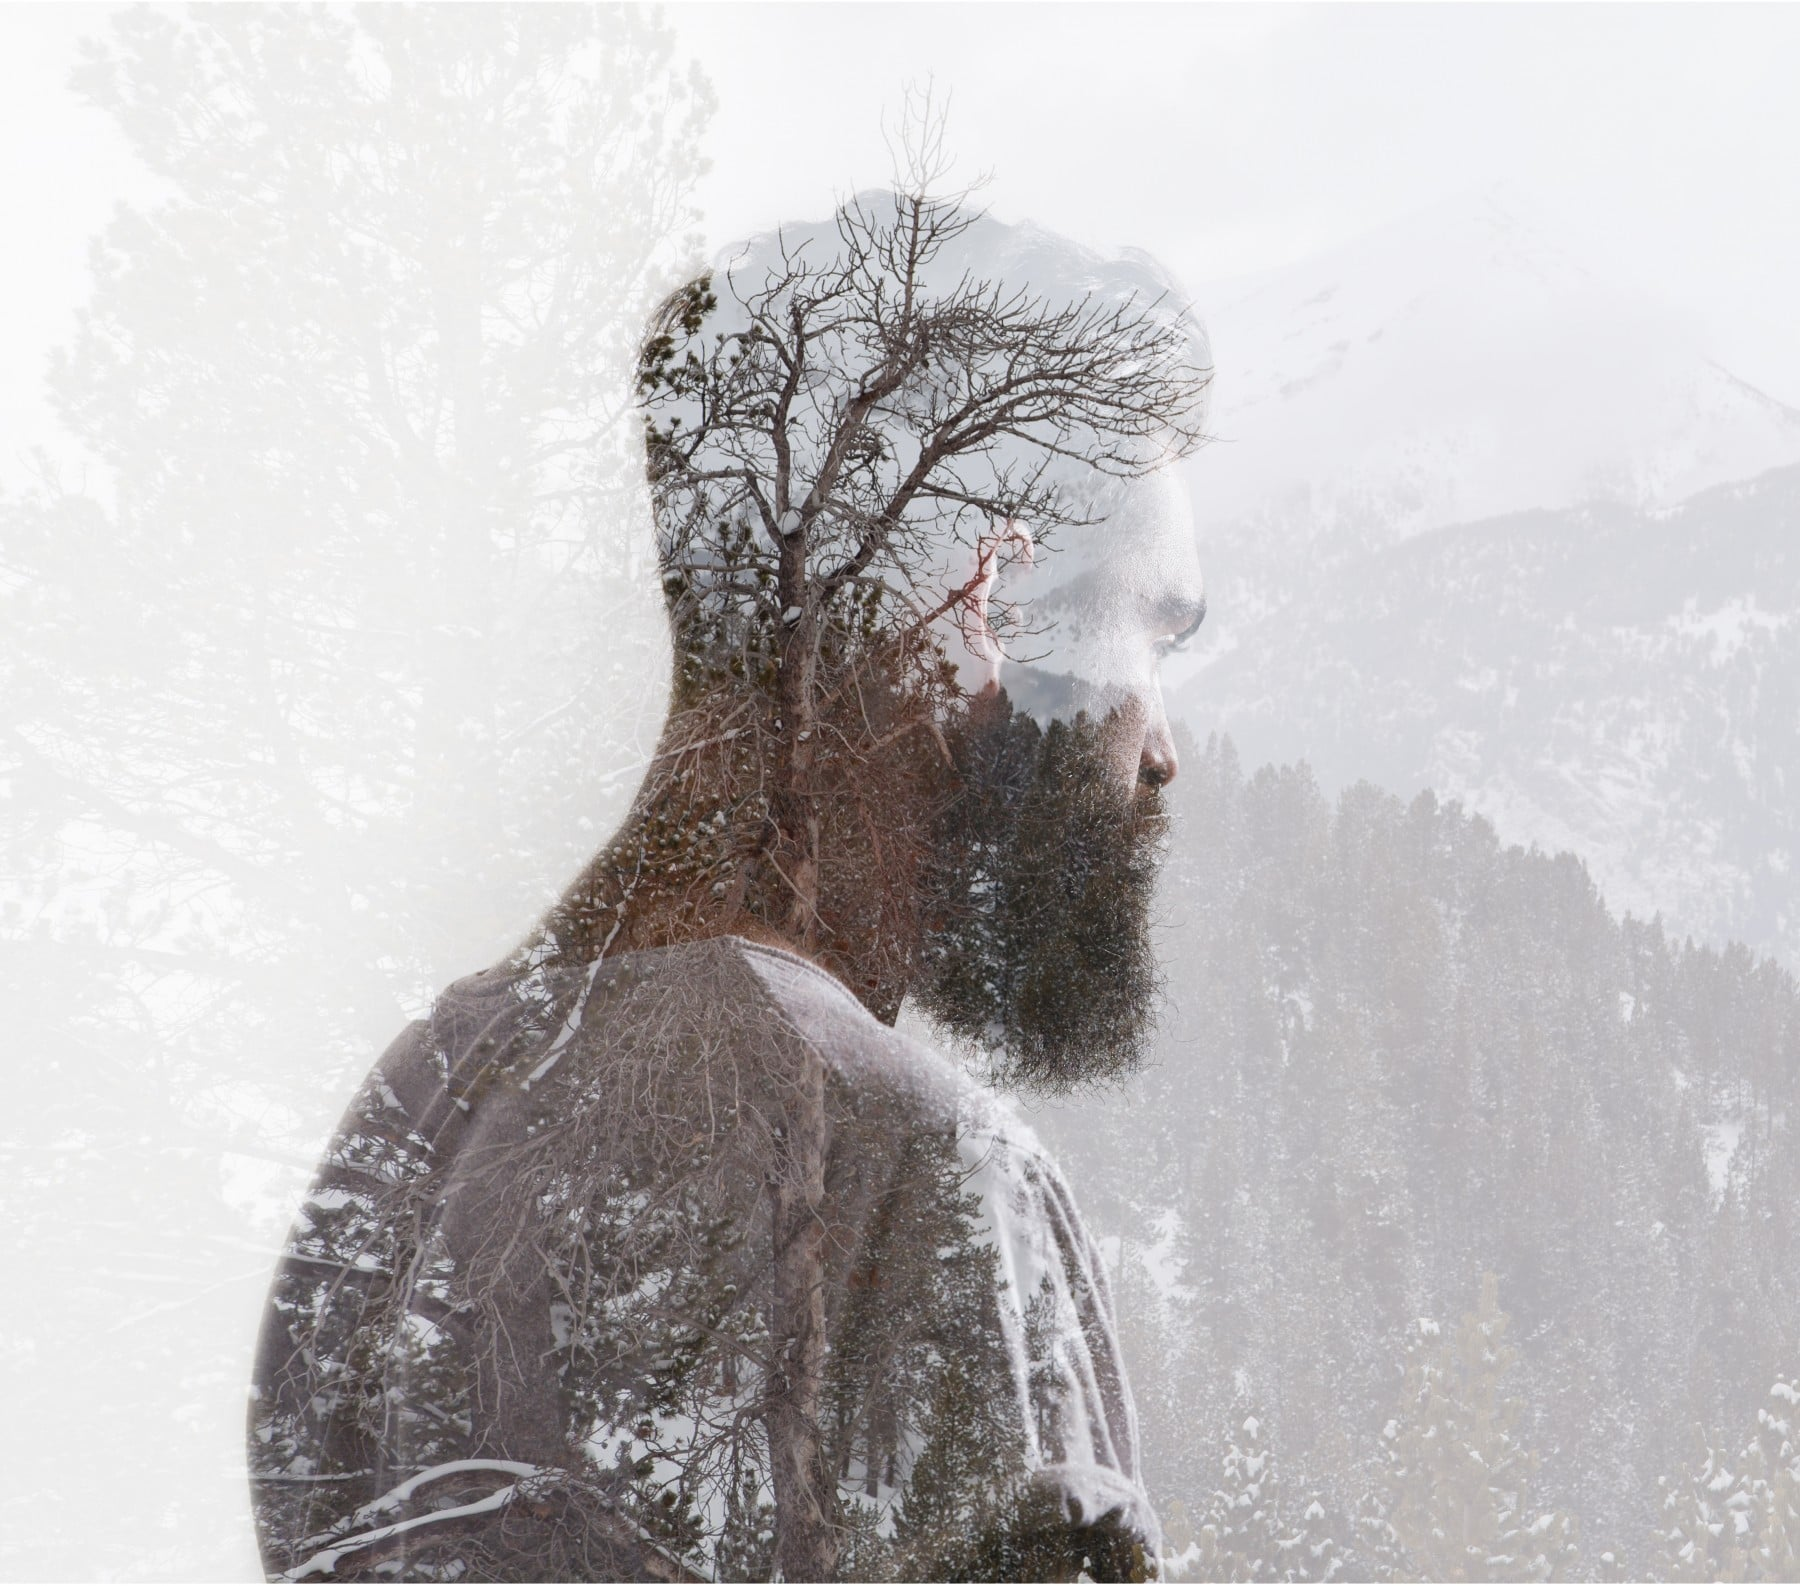 Double color exposure portrait of a bearded guy and tree